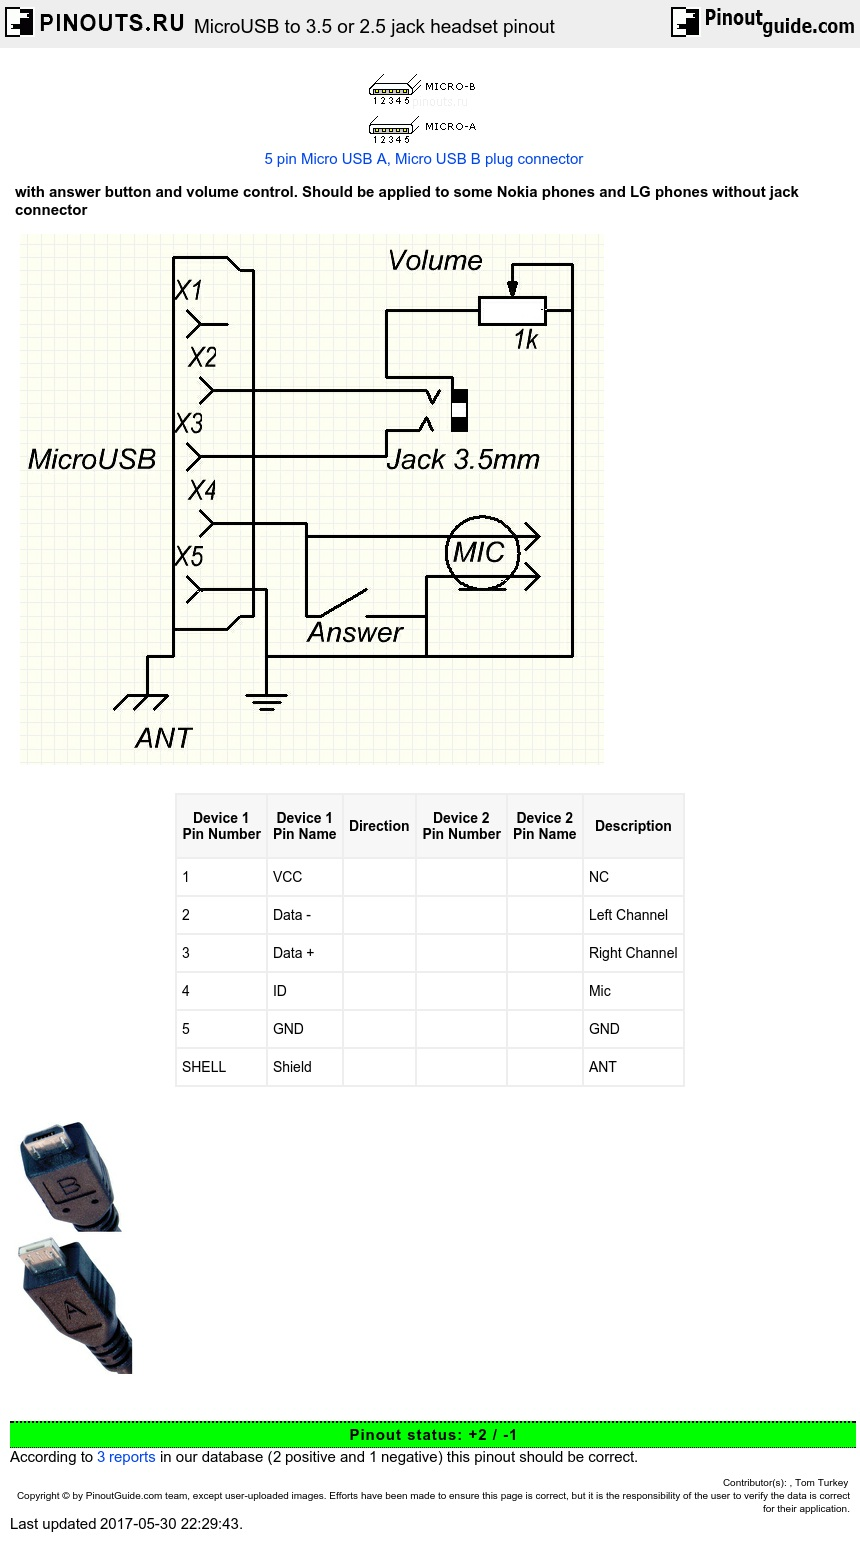 MicroUSB to 3.5 or 2.5 jack headset pinout diagram ...